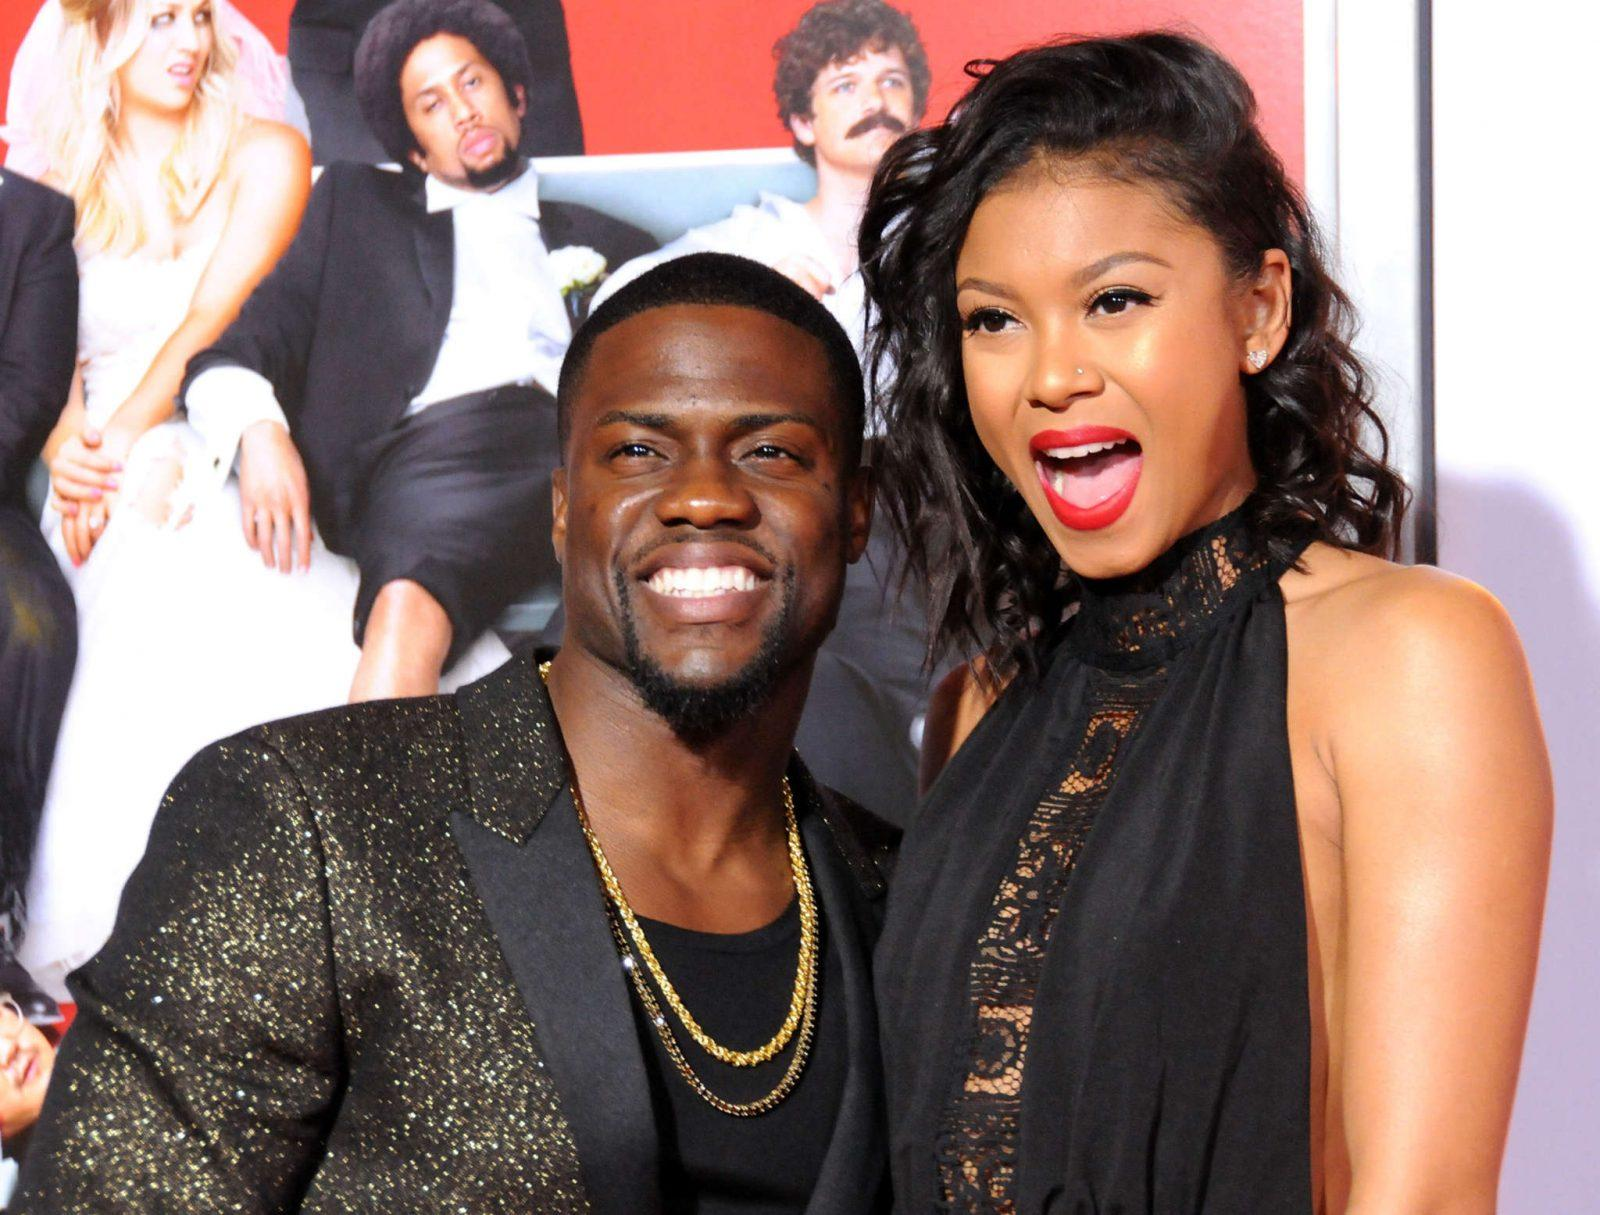 How Tall is Kevin Hart